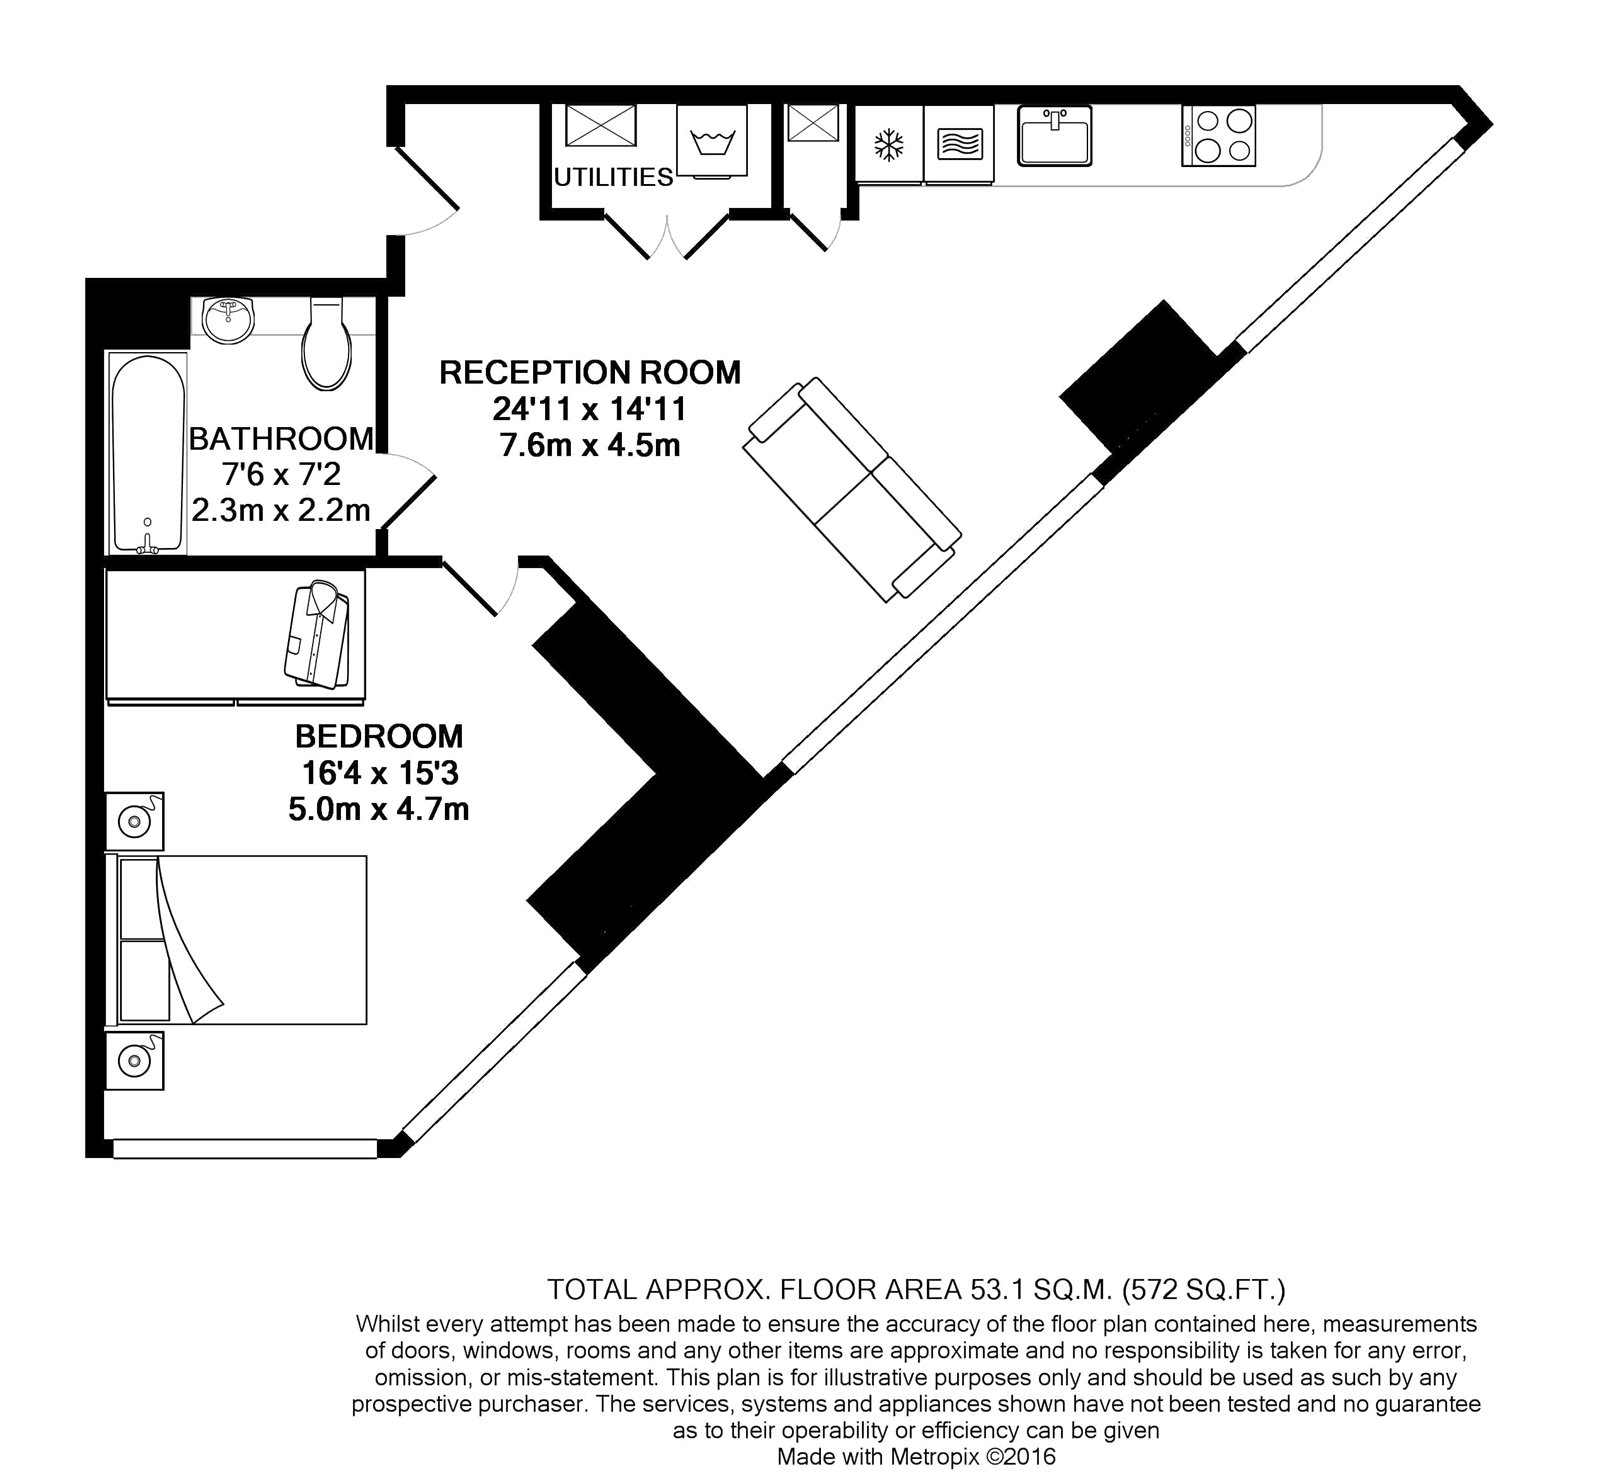 Chronicle Tower, 261b City Road, LONDON, EC1V floorplan